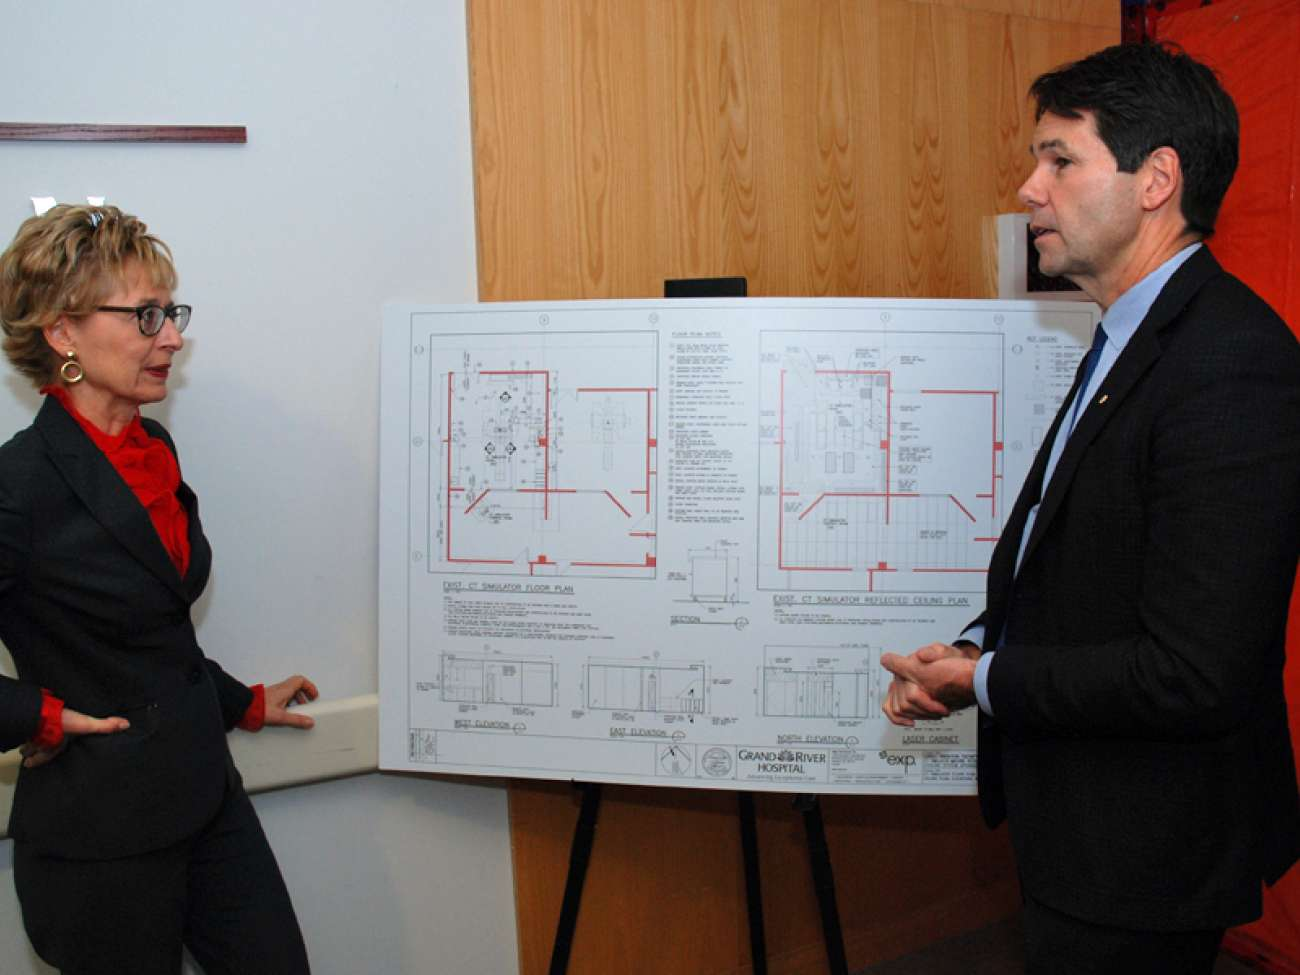 MPP Daiene Vernile and Minister Hoskins review renovation plans to install a second CT simulator at GRH.